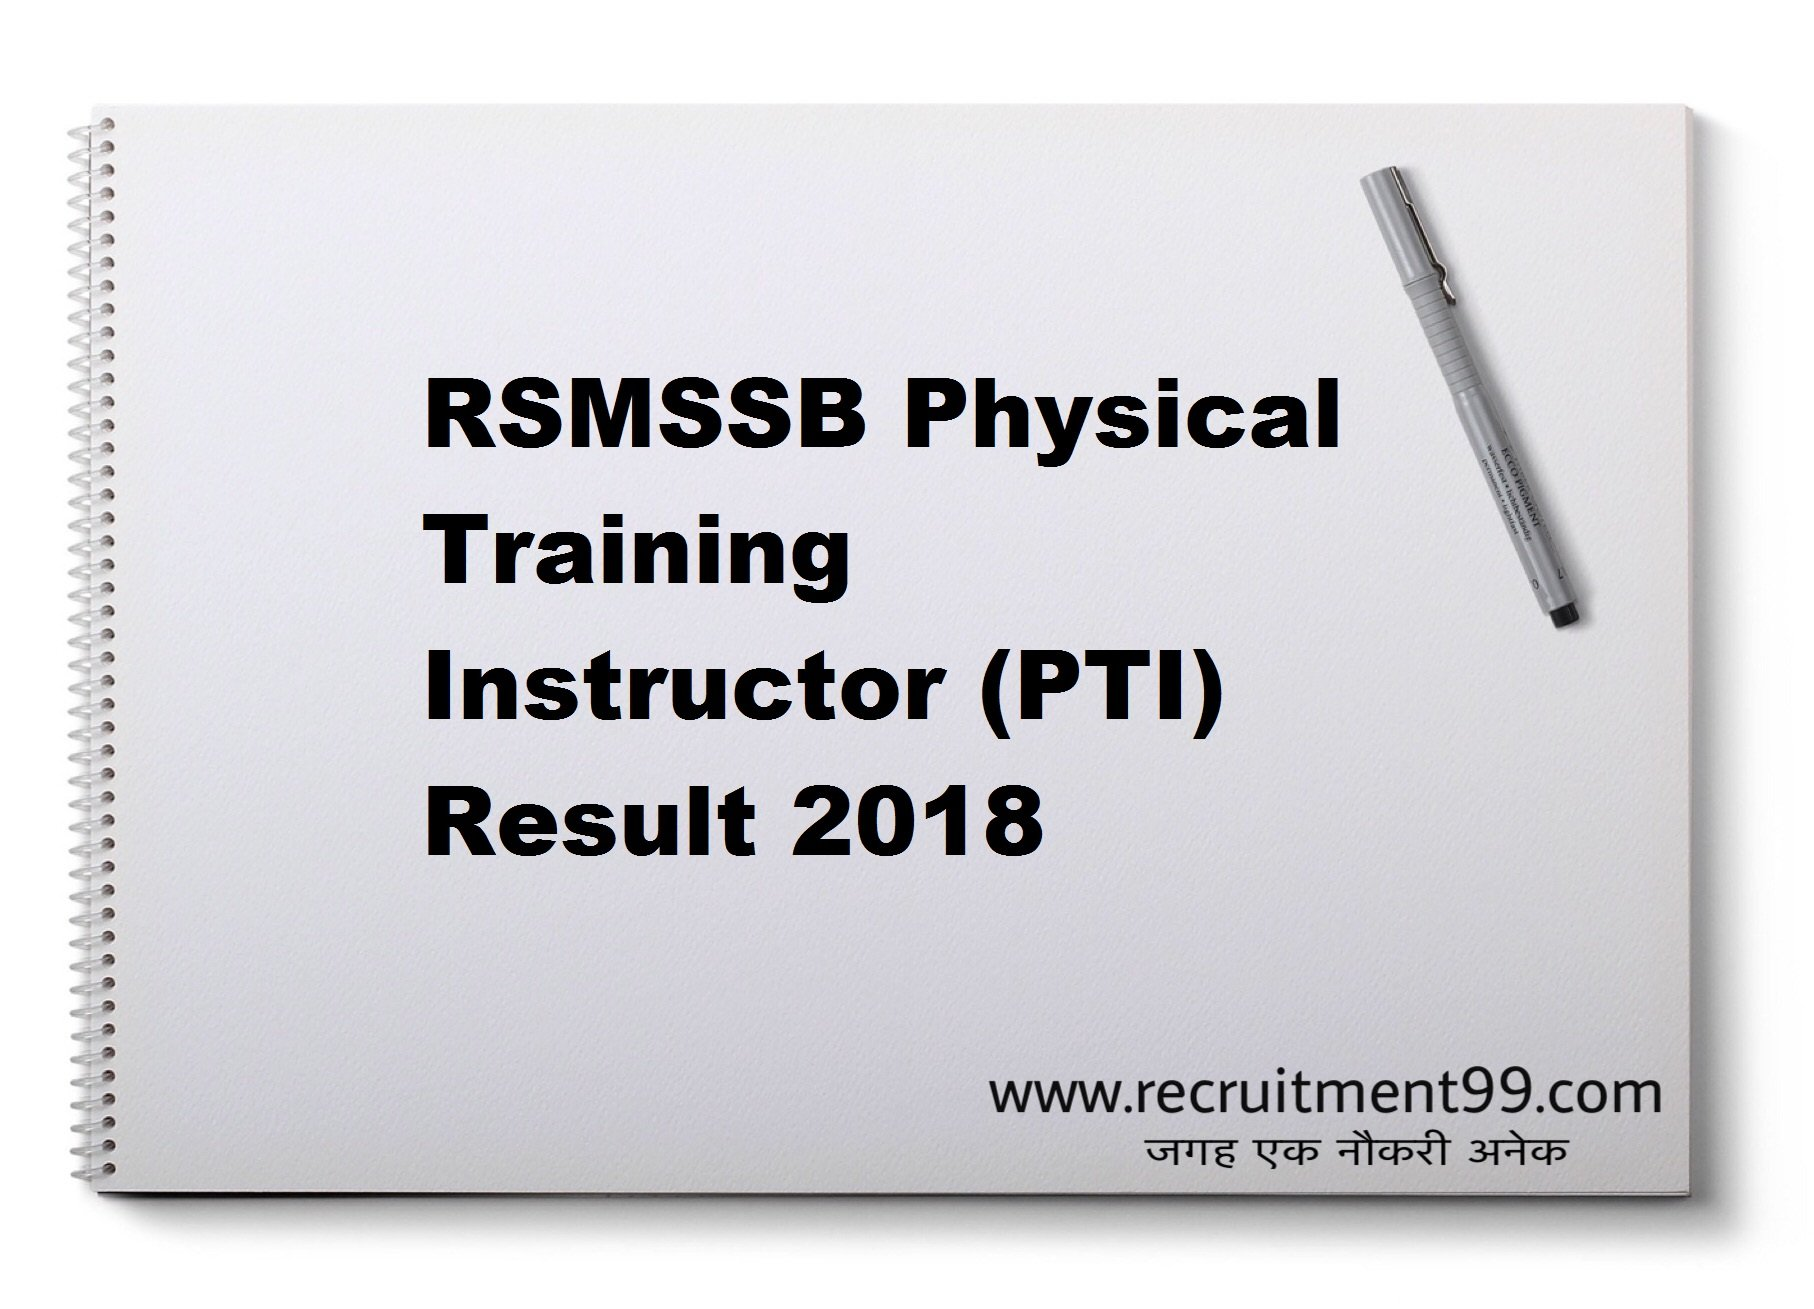 RSMSSB Physical Training Instructor PTI Result 2018